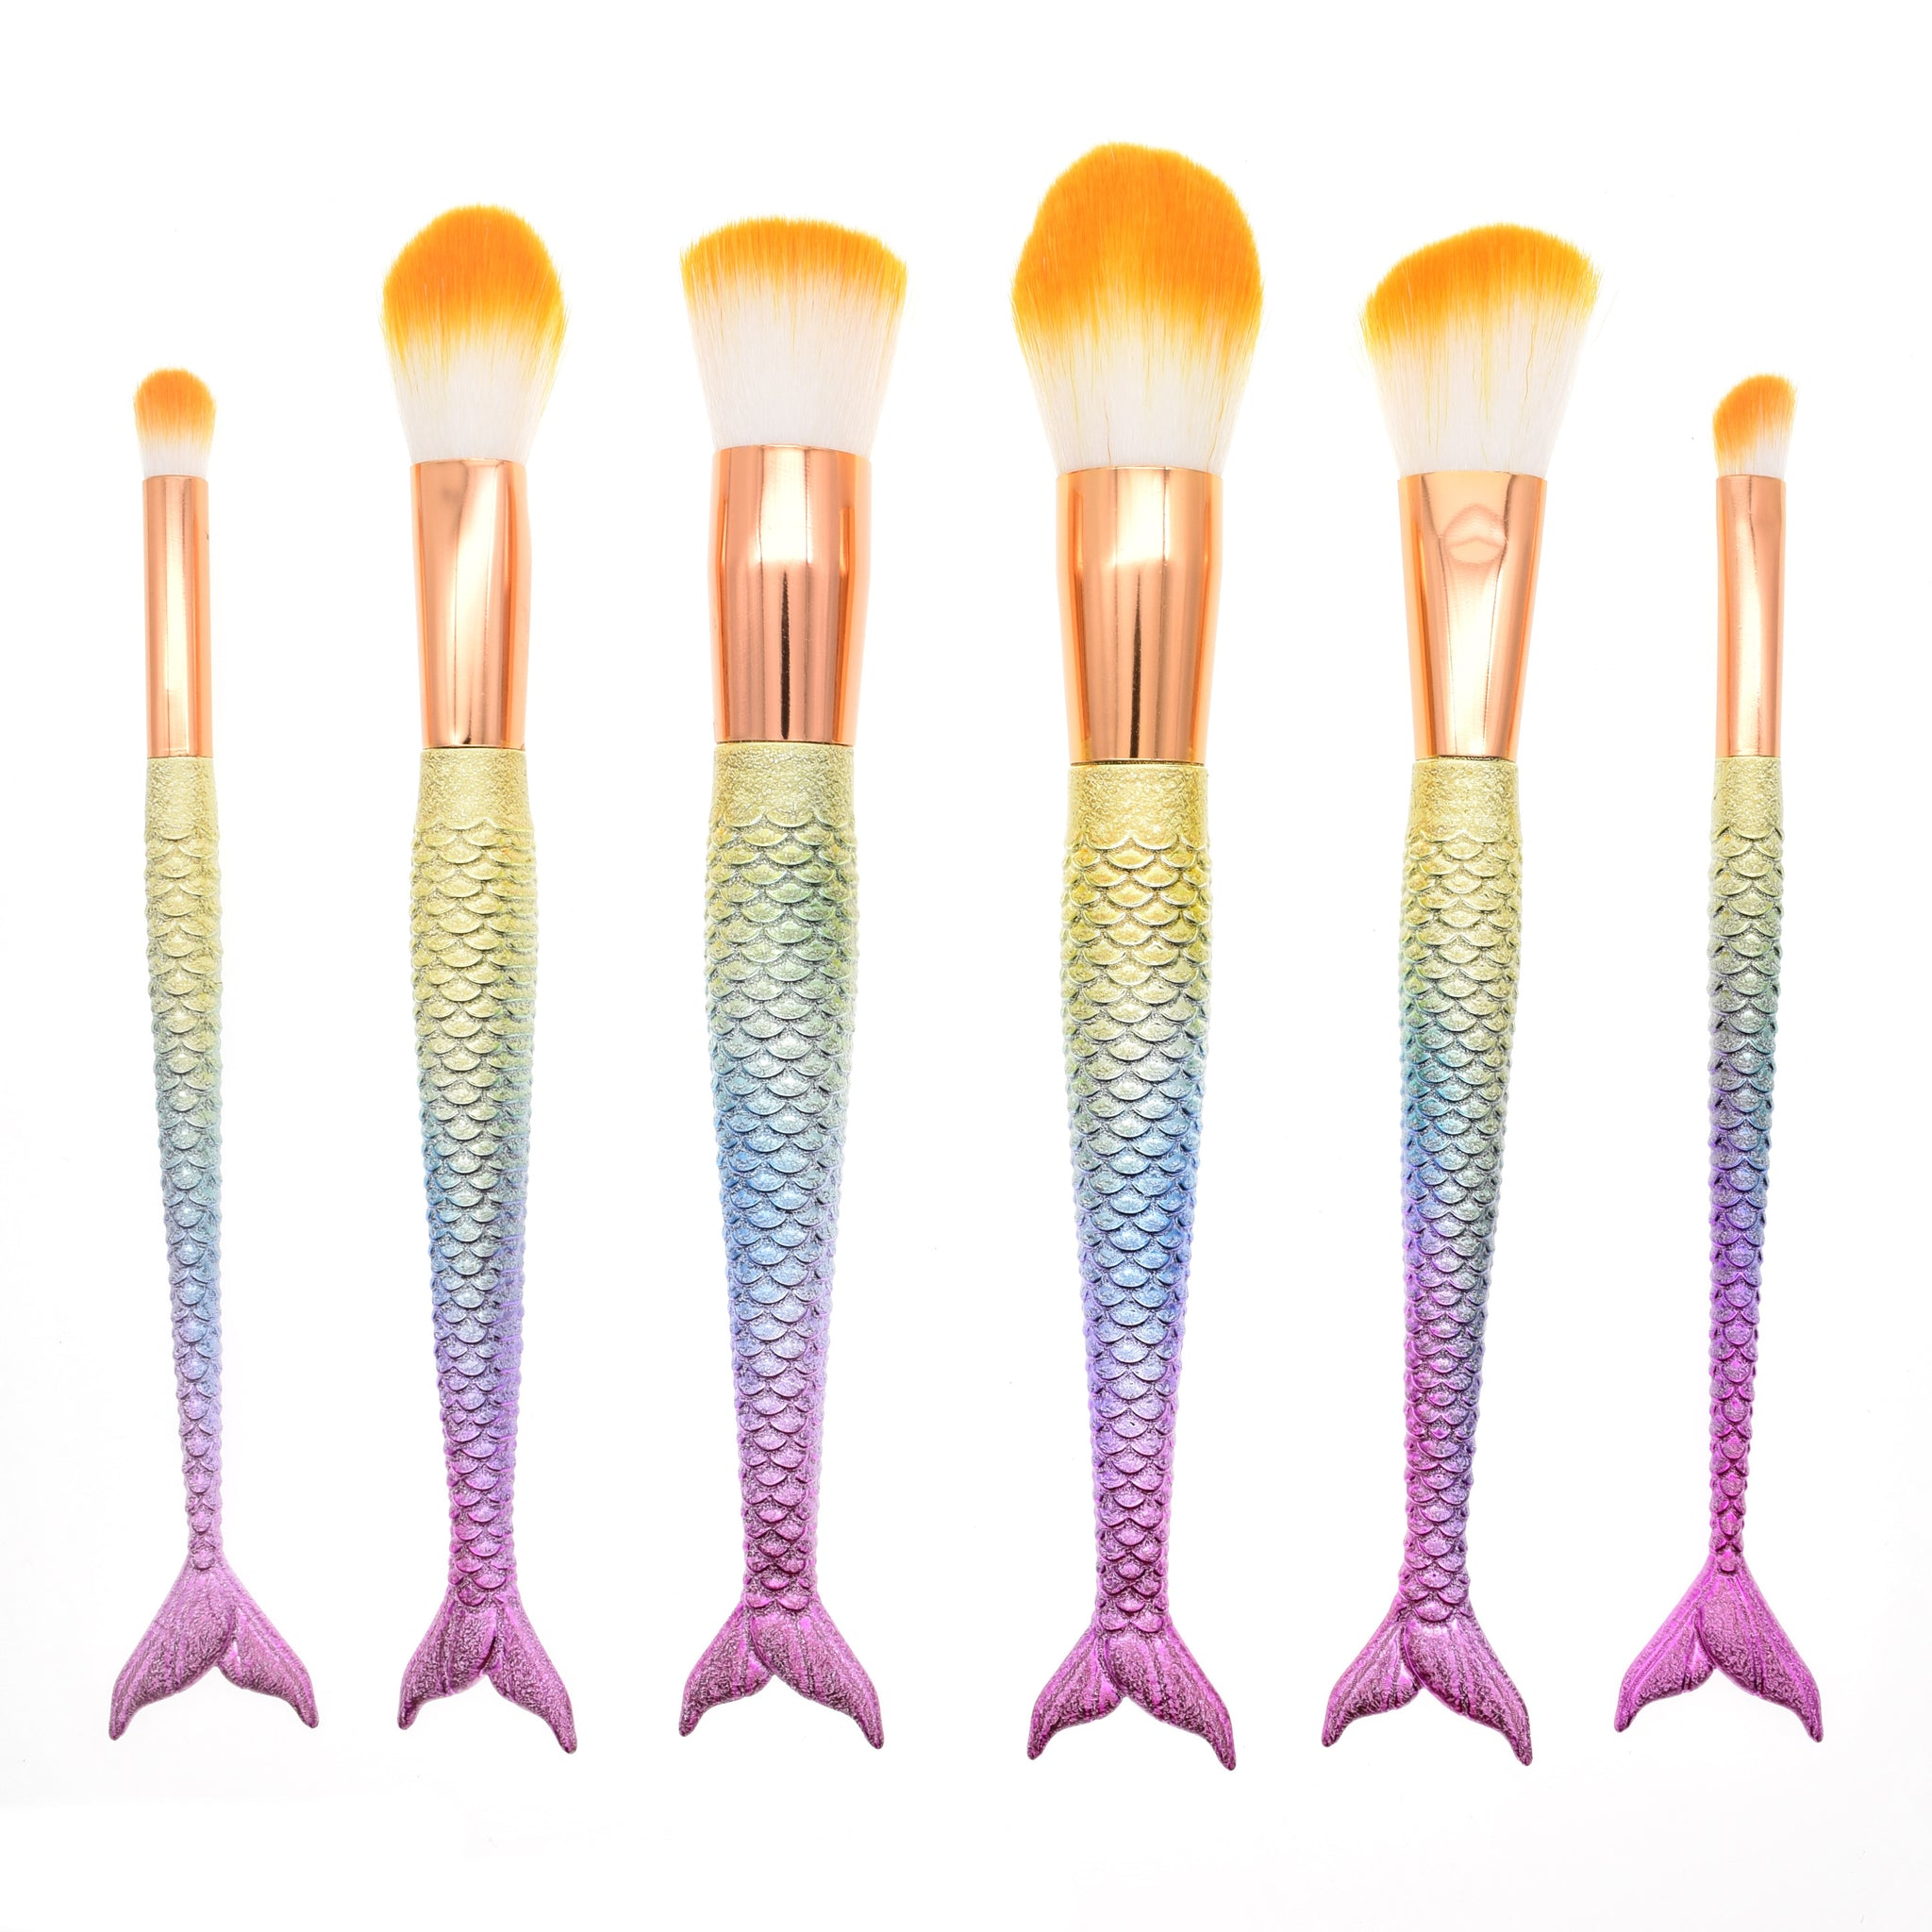 6Pcs Purple Mermaid Brushes - Dolovemk Beauty